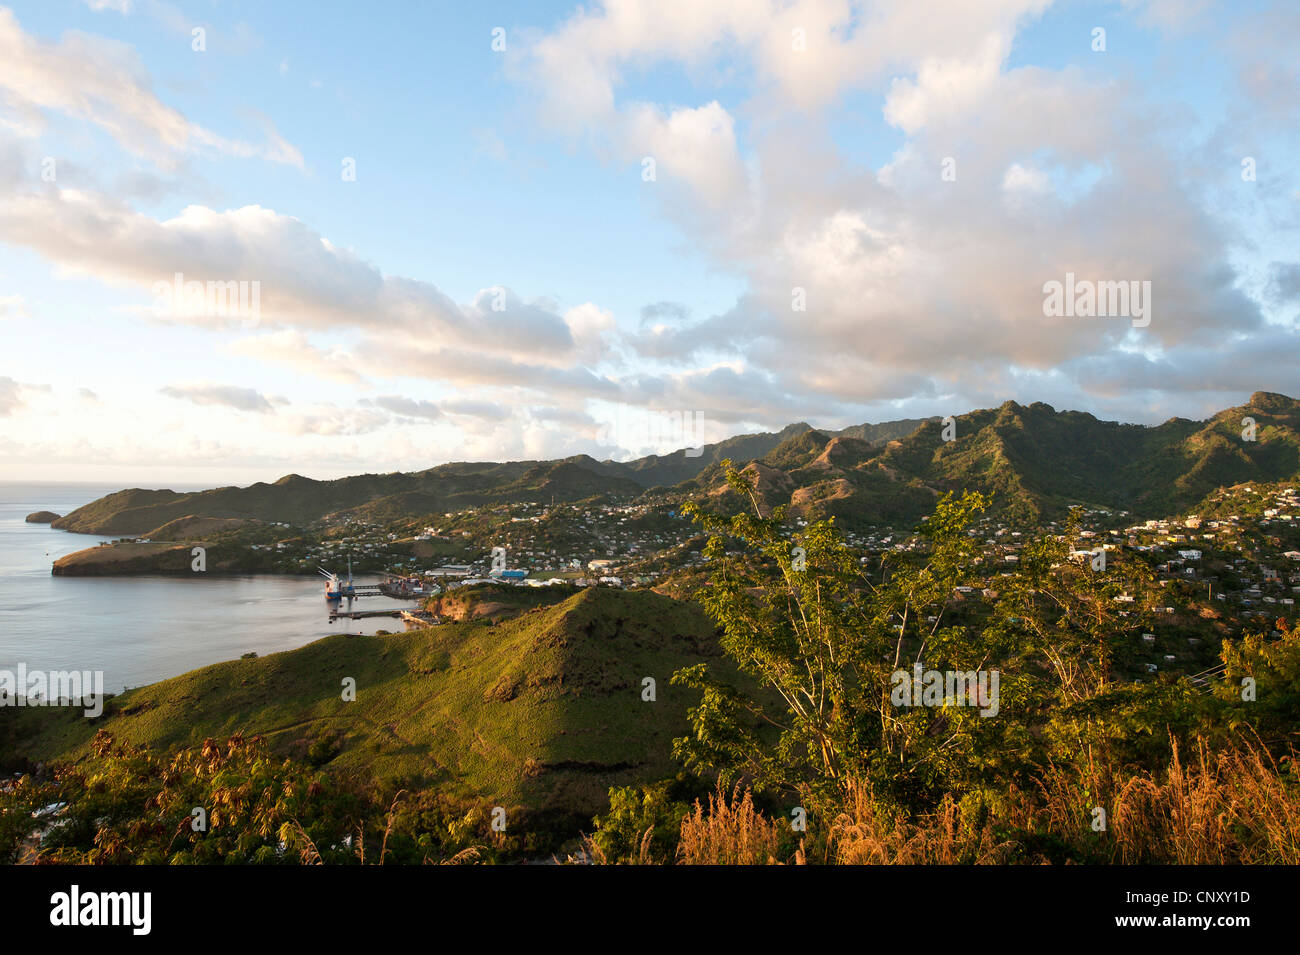 view from a gazebo over the forested and populous Caribbean coast, Saint Vincent and the Grenadines, Antillen, Camden - Stock Image